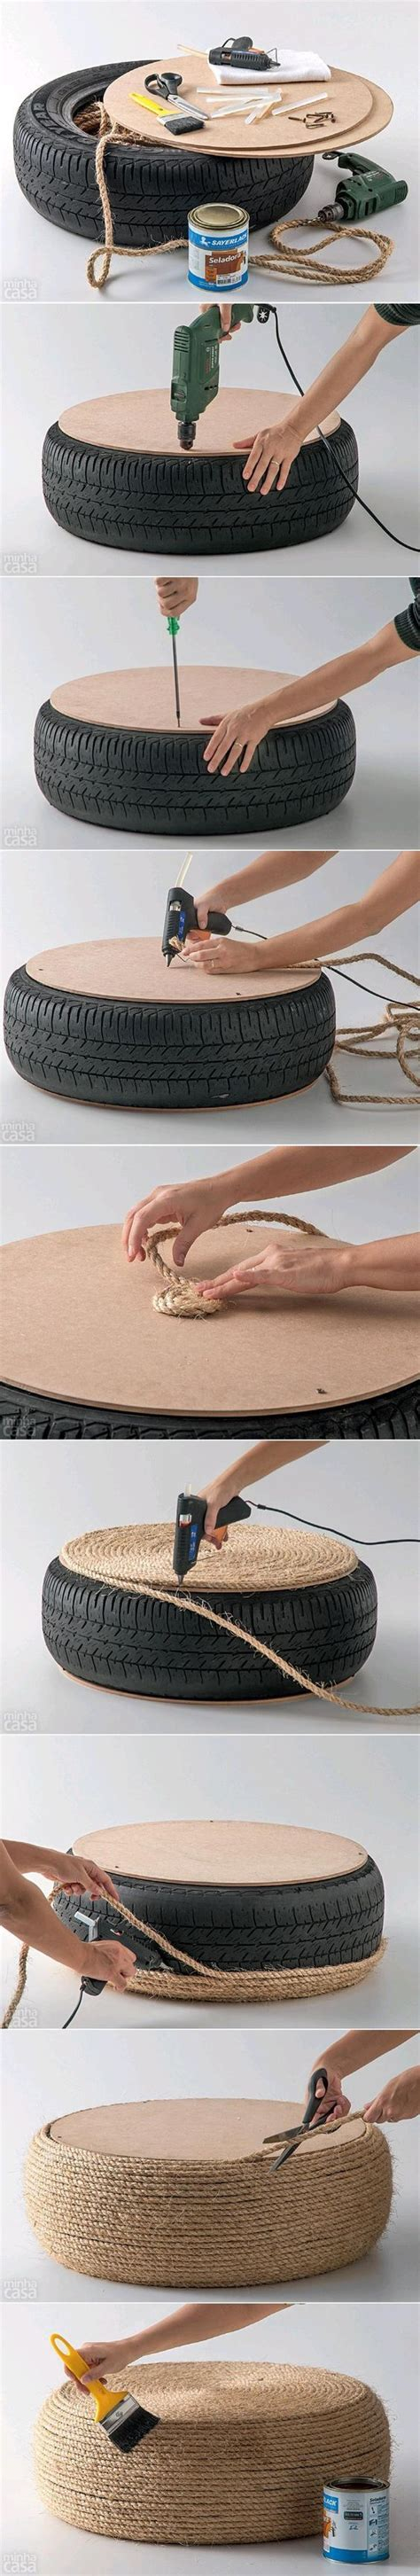 Nautical Storage Ottoman How To Turn An Tire Into A Stylish Nautical Inspired Ottoman Home Crafts